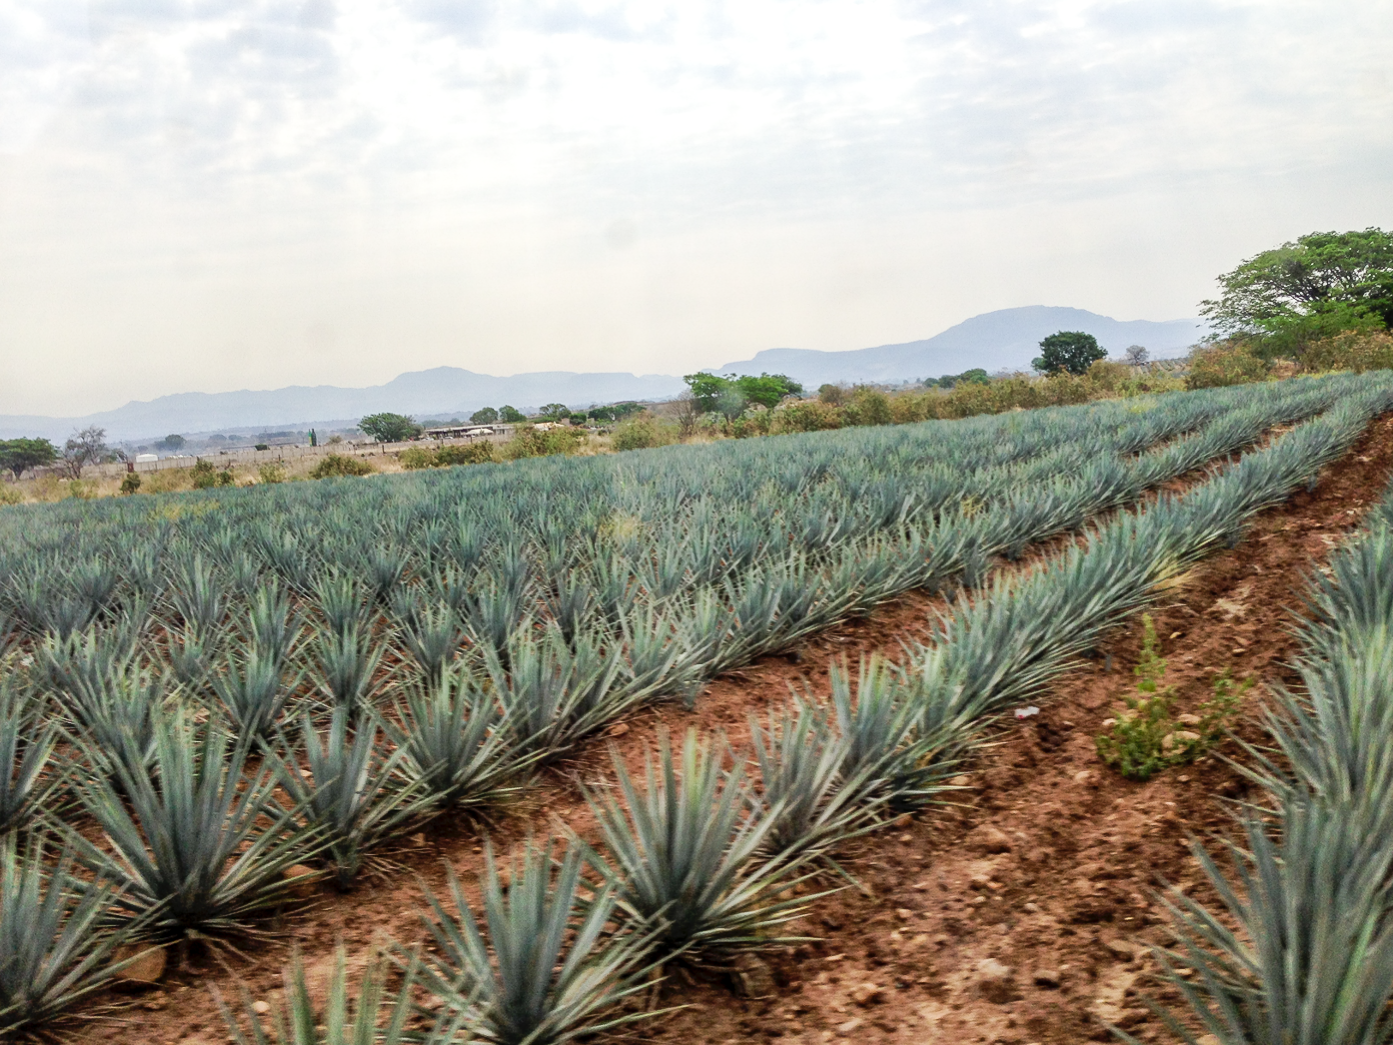 Land of Tequila | Guadalajara, Mexico part 2 via www.surelysimple #surelysimple #surelysimpletravel #travel #mexico #guadalajara #tequila